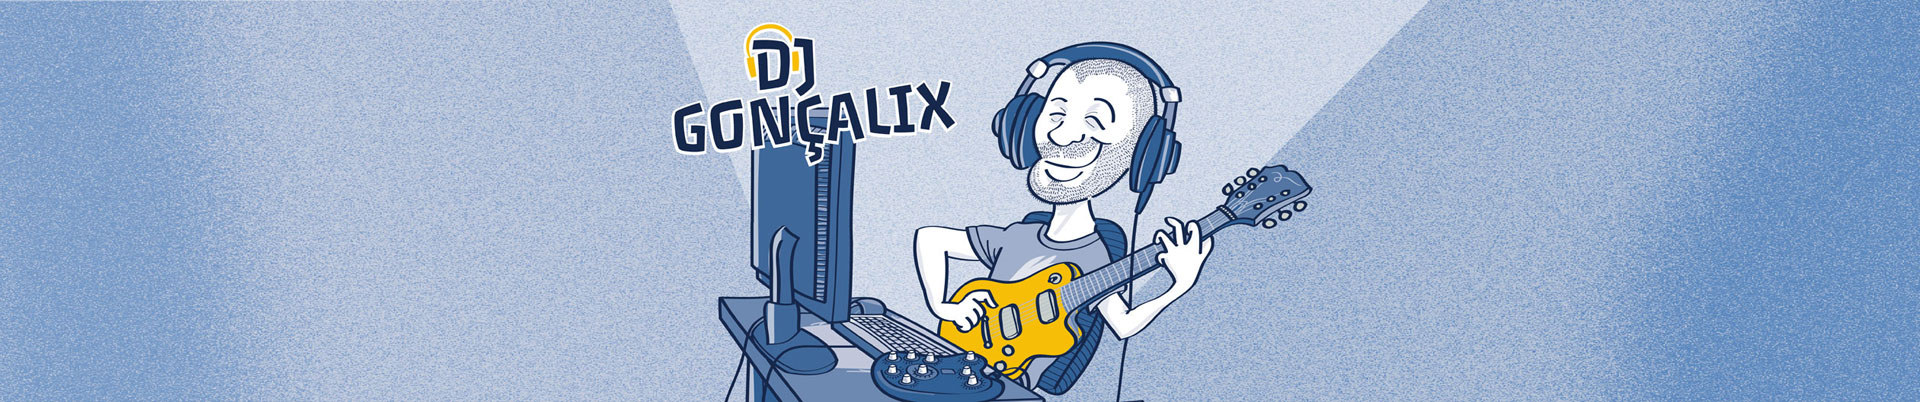 dj-goncalix-home-blog